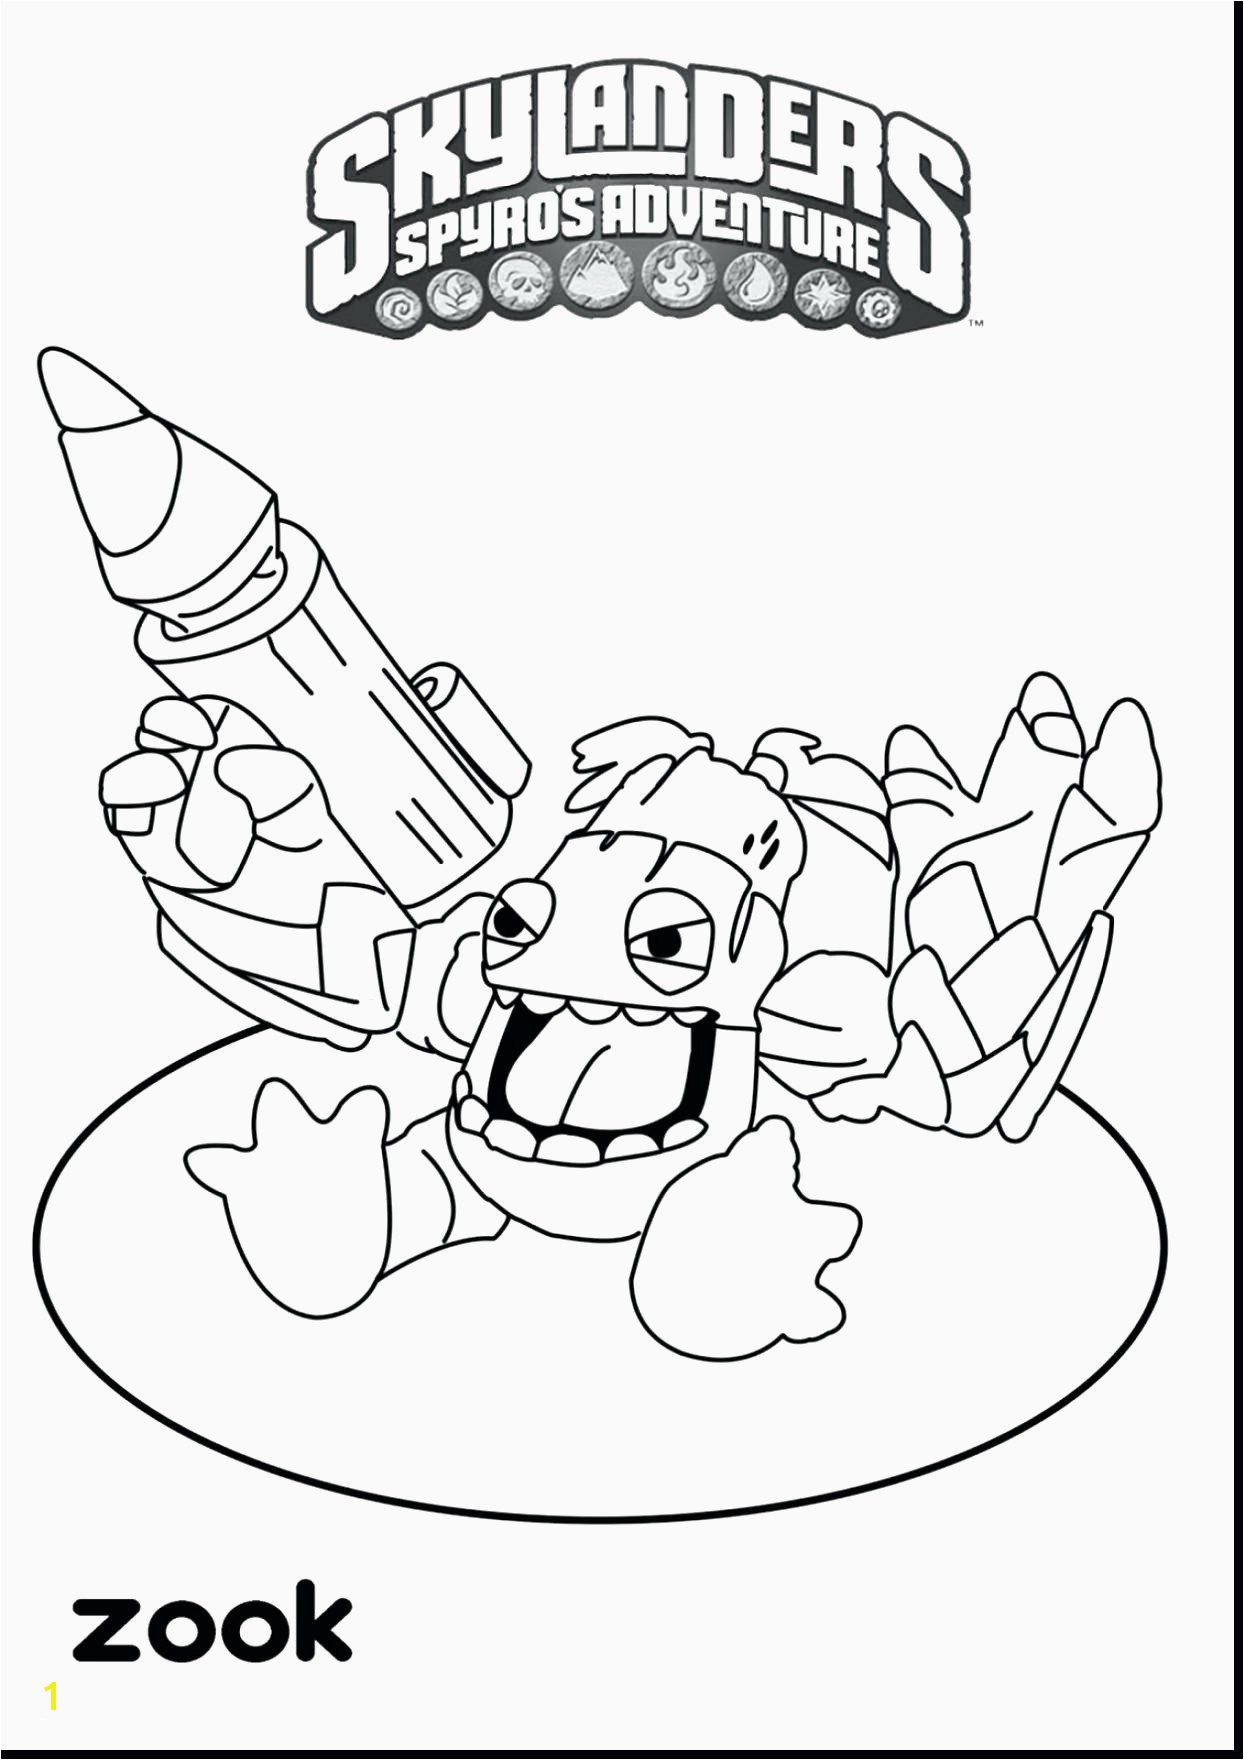 Blue Avatar Coloring Pages Printable Coloring Pages Archives Page 41 Of 85 Katesgrove